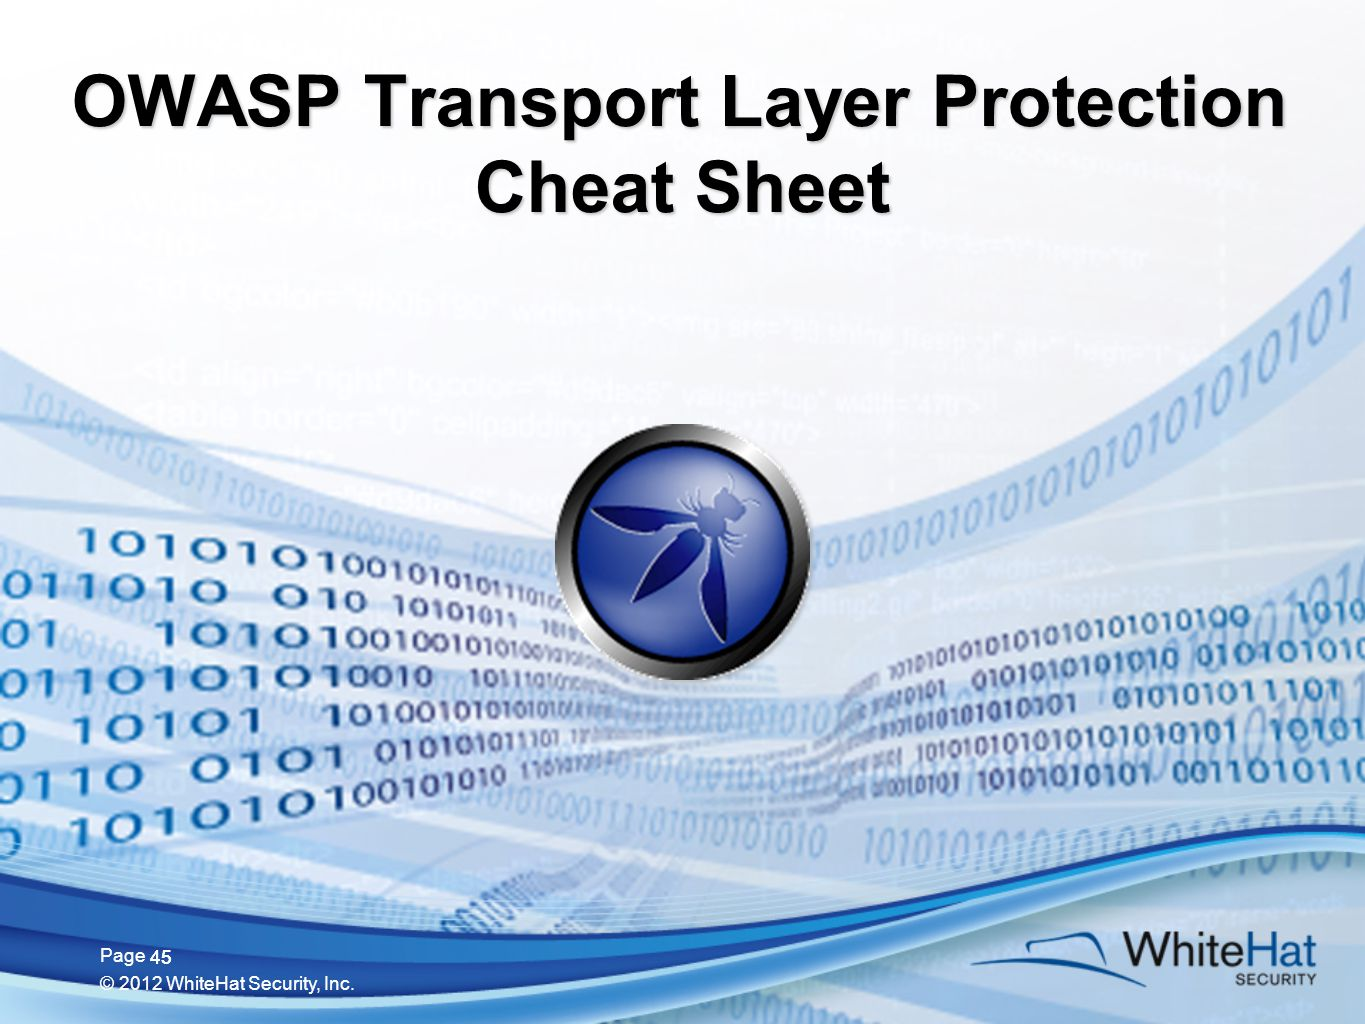 45 Page © 2012 WhiteHat Security, Inc. 45 OWASP Transport Layer Protection Cheat Sheet